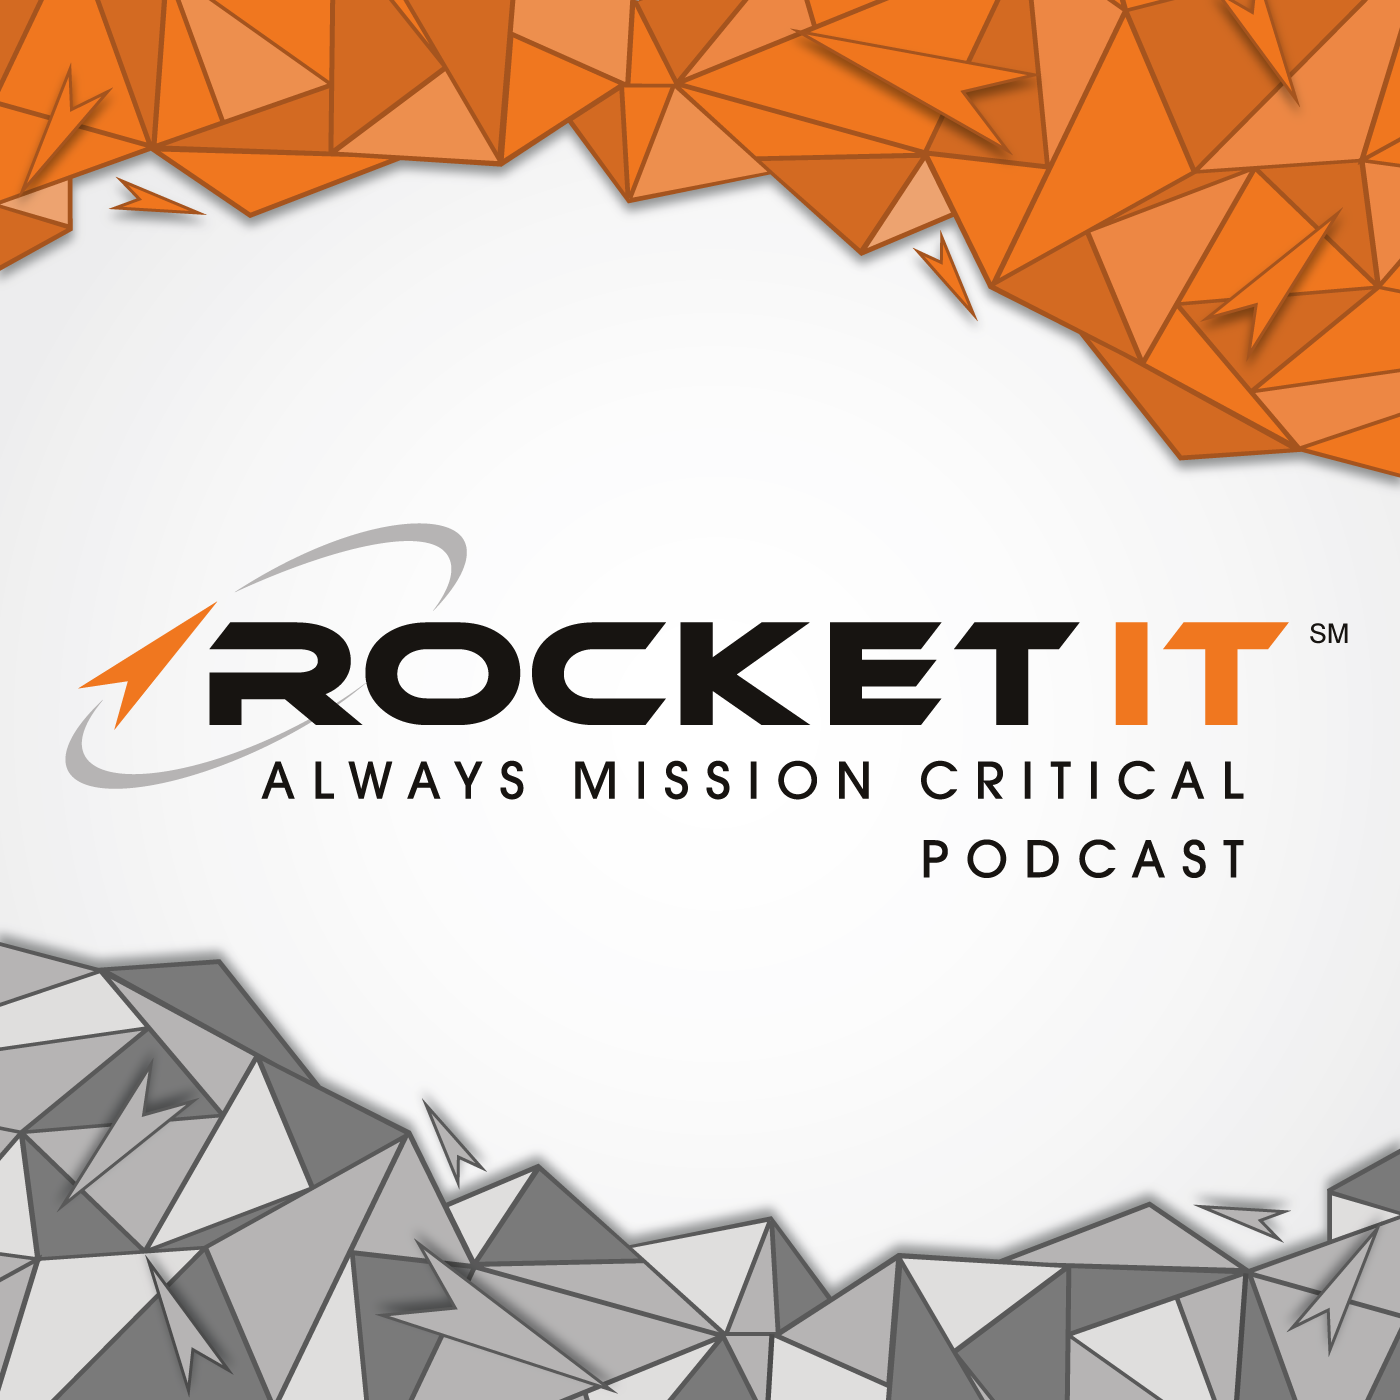 Rocket IT Business Podcast   Brandon Hutchins   Leading Change Through Influence   Ep. 22